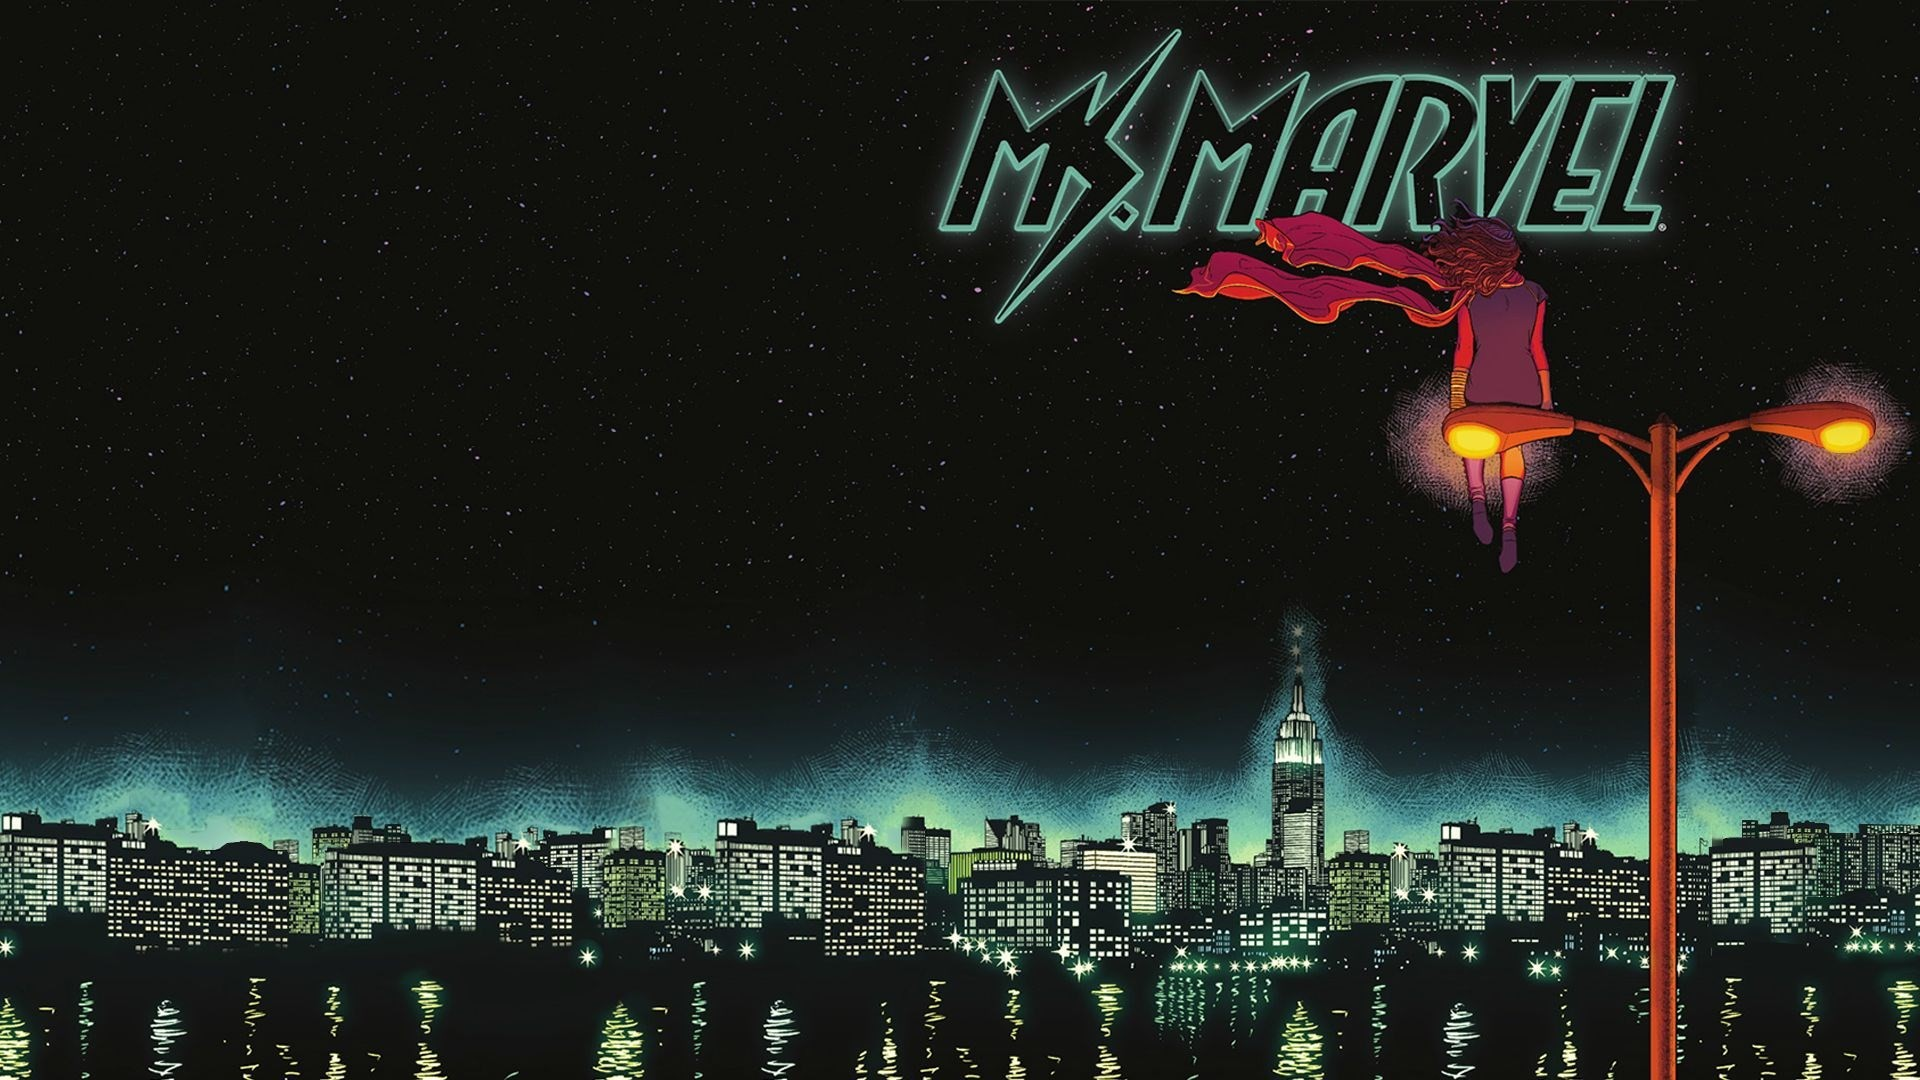 free wallpaper and screensavers for ms marvel